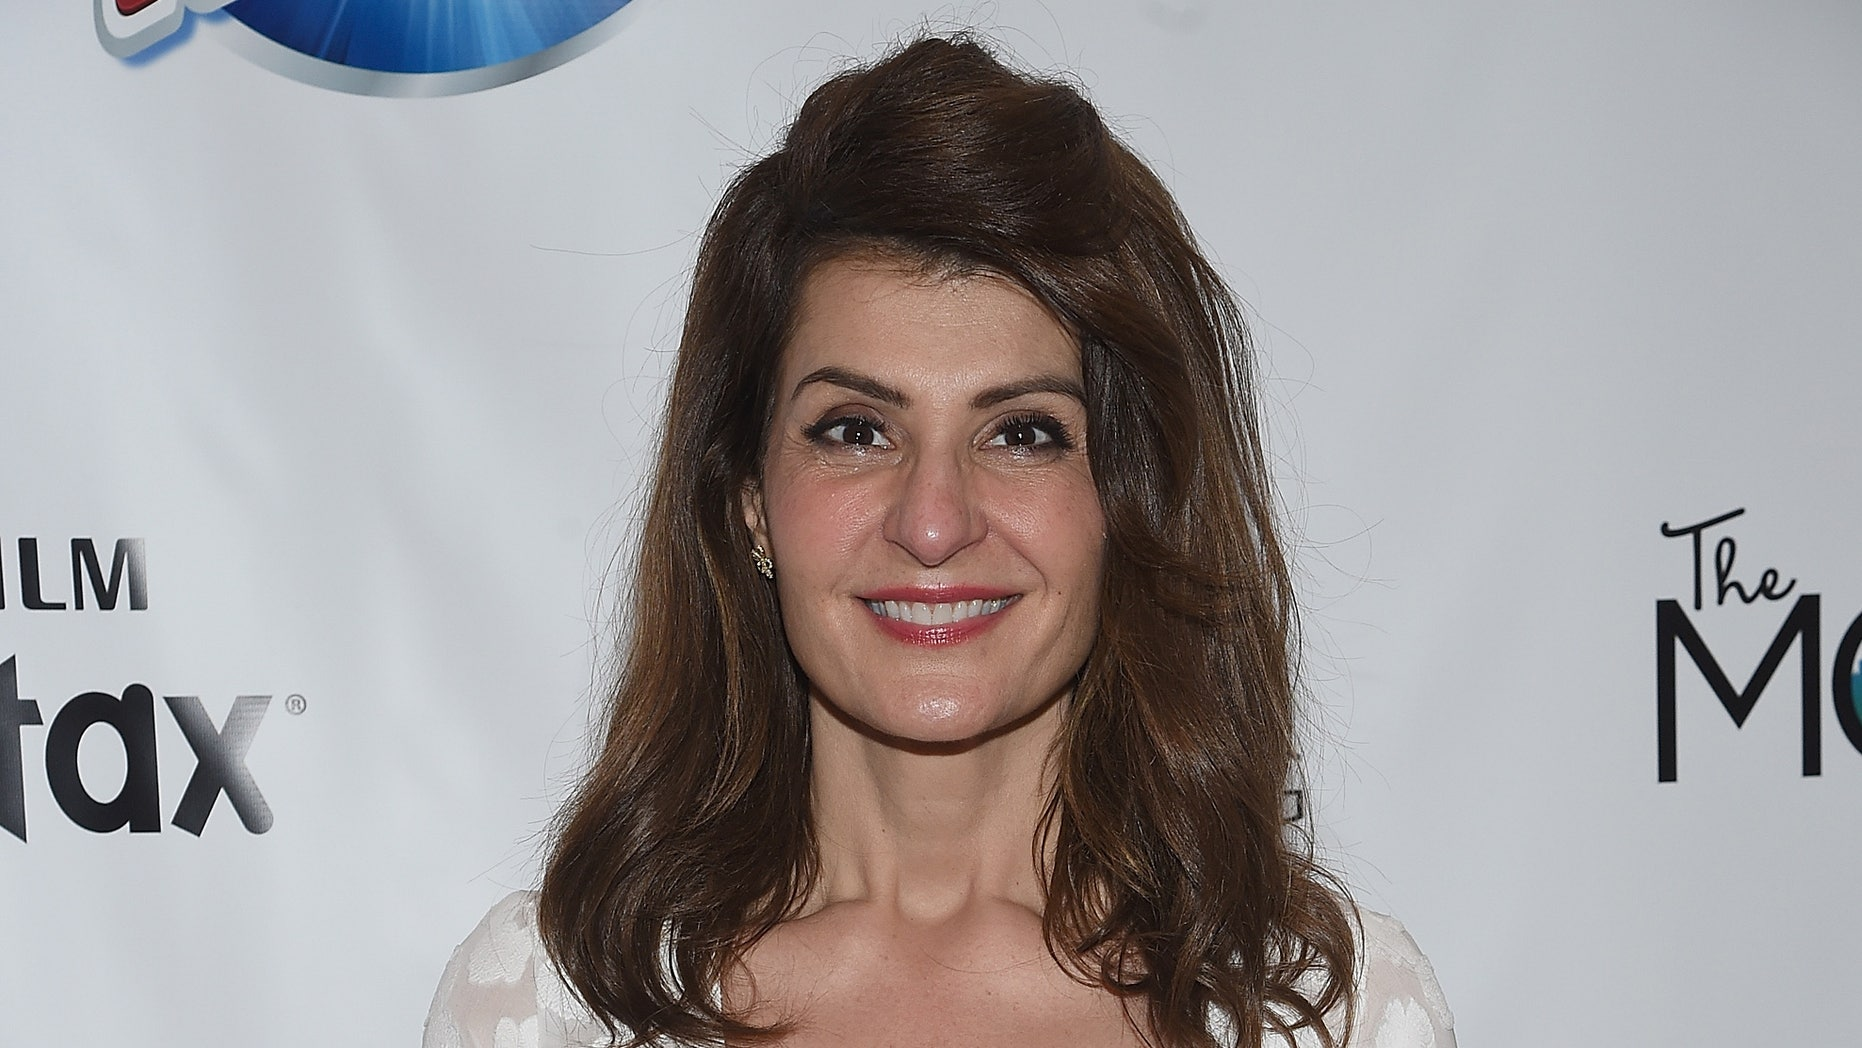 Nia Vardalos on March 18, 2016 in New York City.